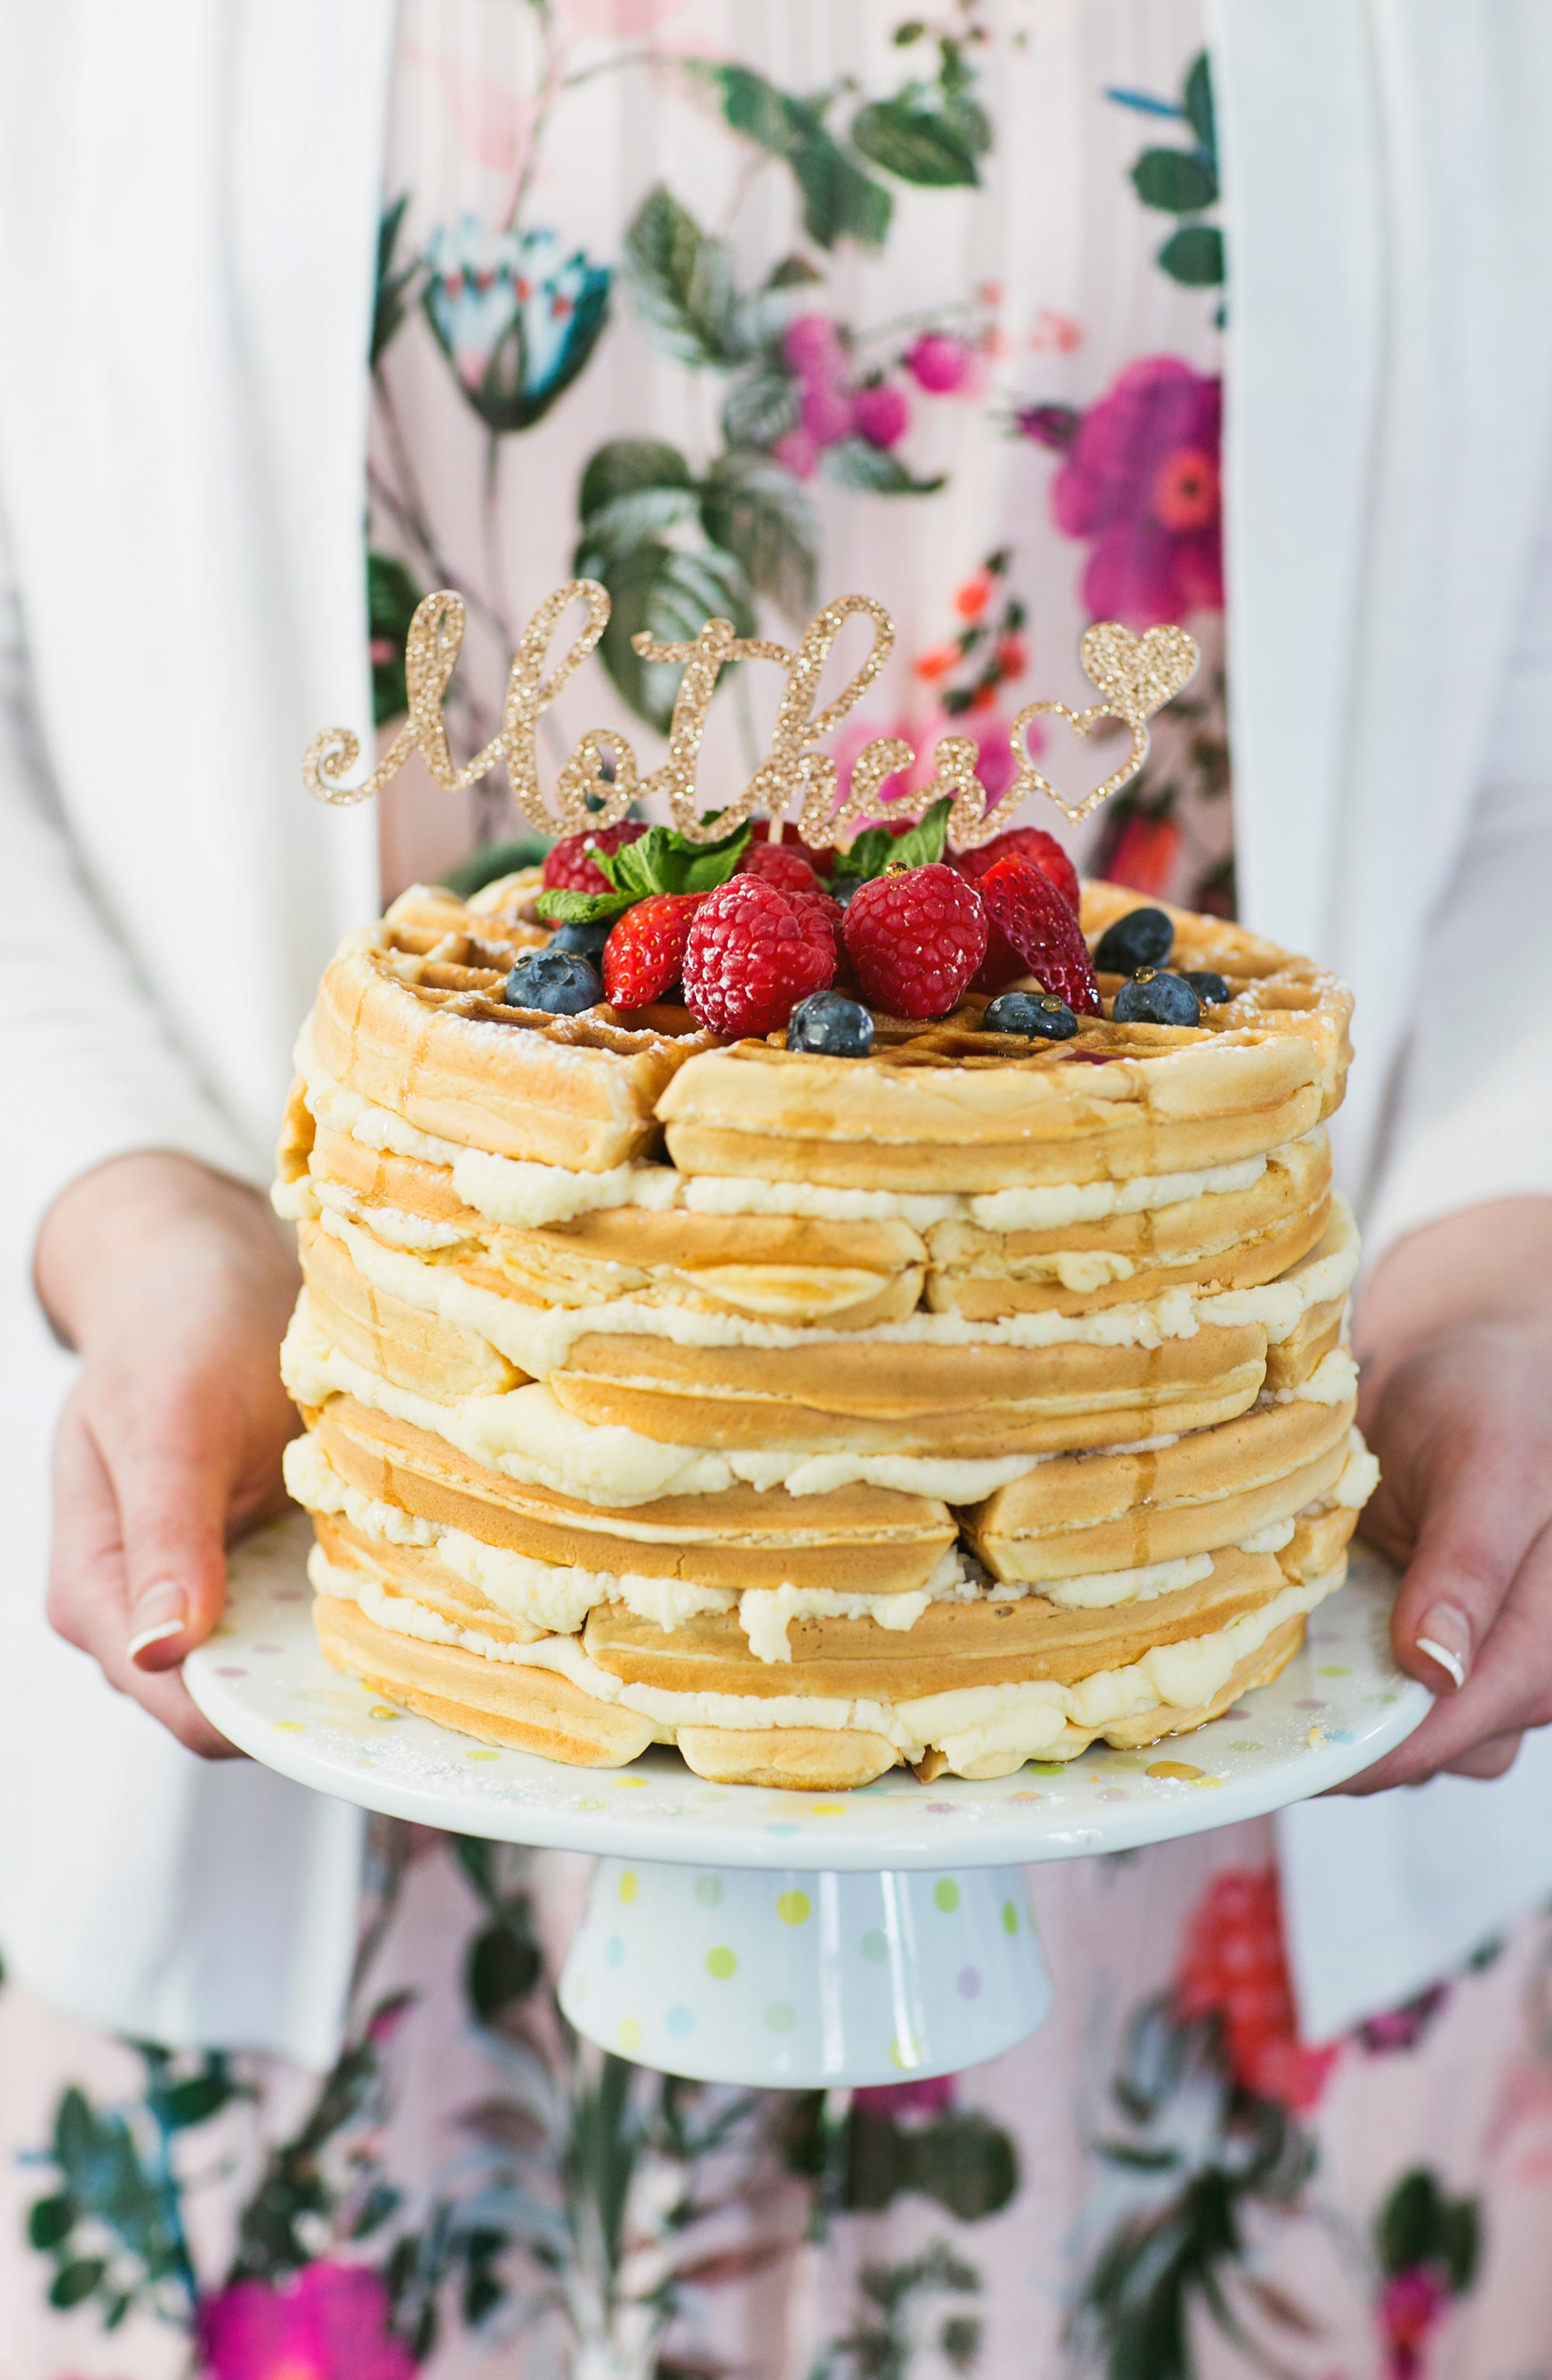 Mother's Day Layered Waffle Cake with Fresh Berries